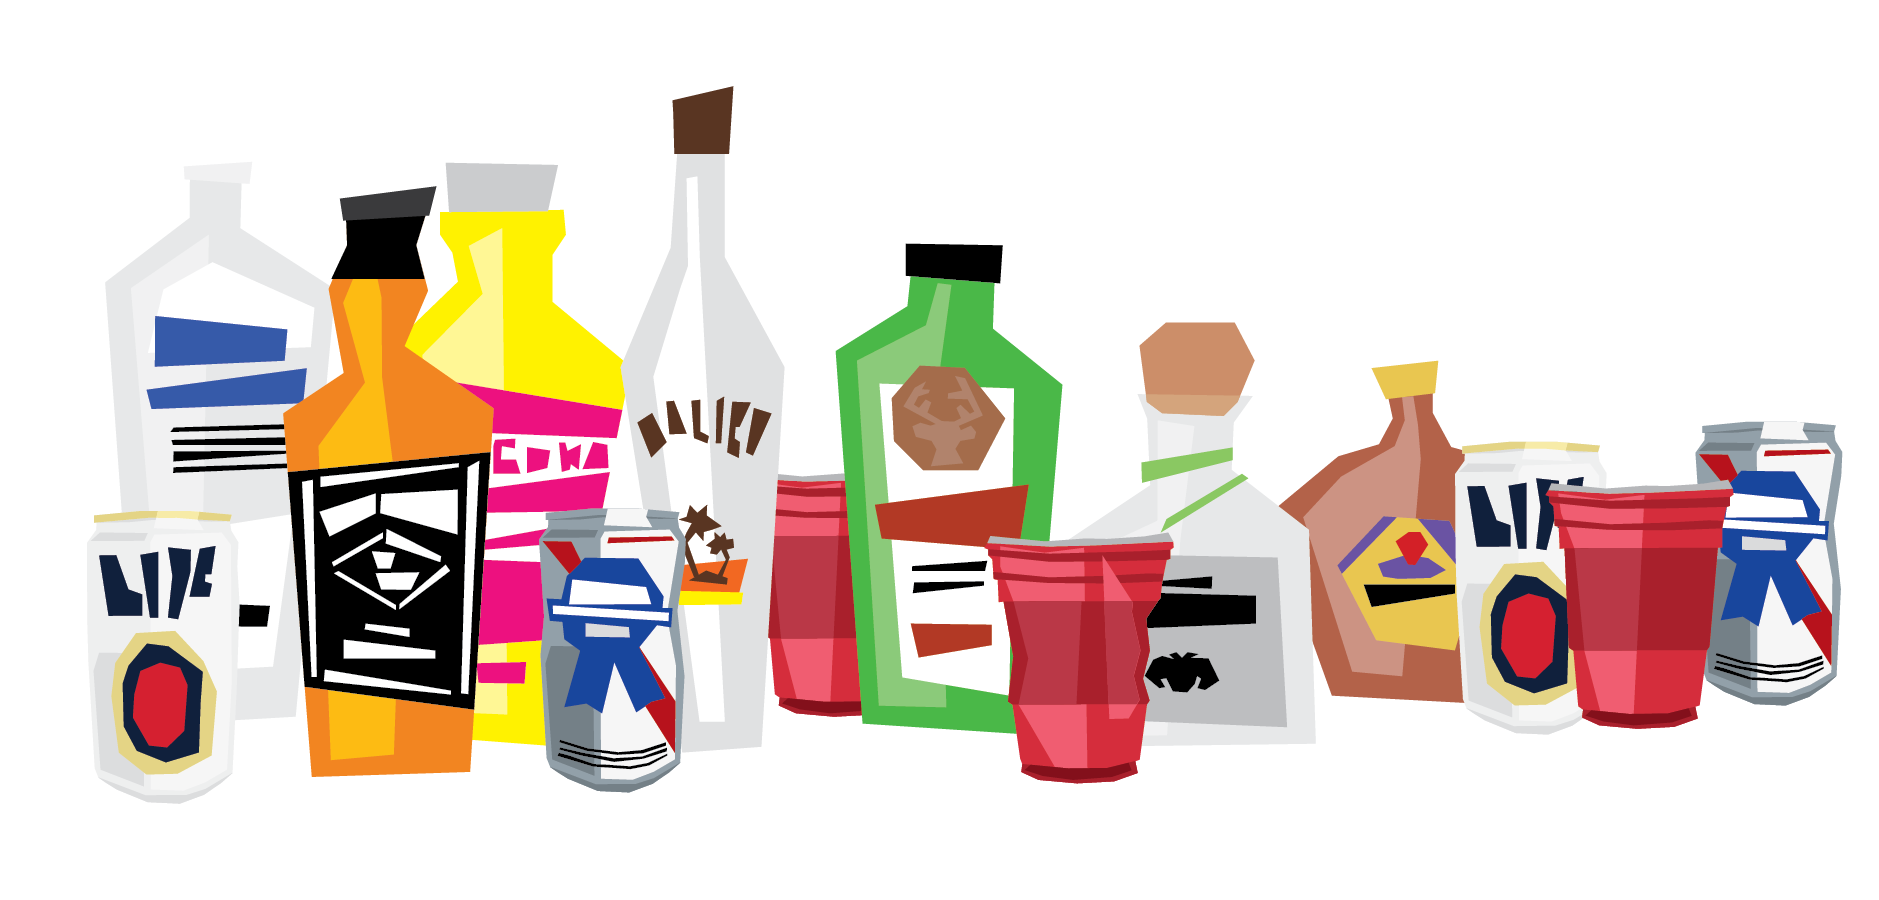 Distilled drink clip art. Drinks clipart non alcoholic beverage